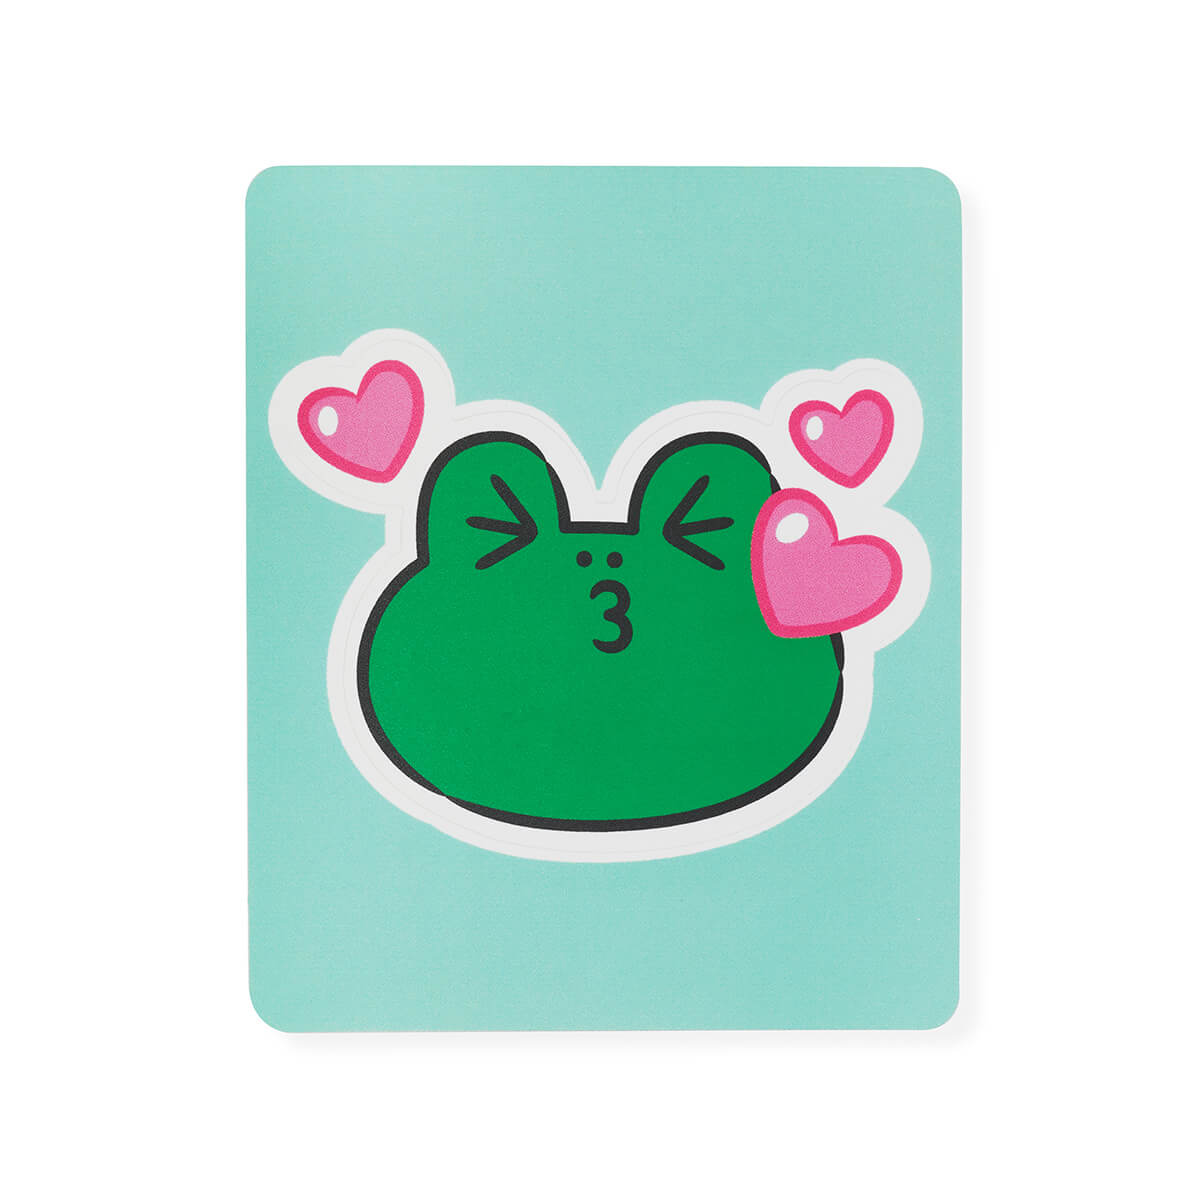 LINE FRIENDS LEONARD Removable Decal Sticker (25)